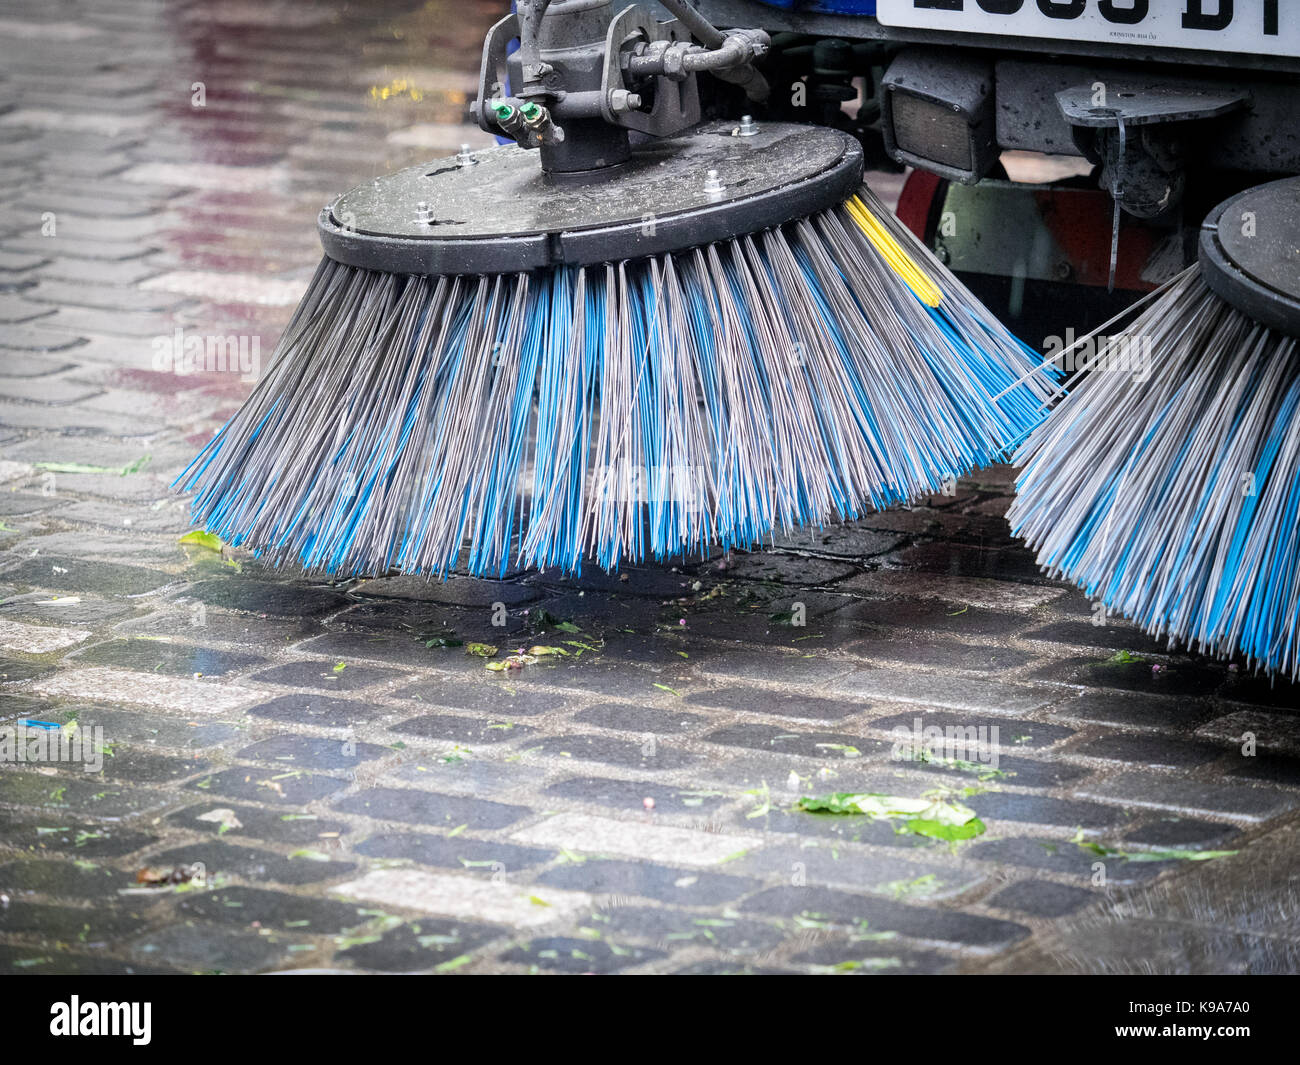 Street Sweeping Machine Brushes - a Street Sweeper pauses after clearing up debris in London's Soho after the - Stock Image